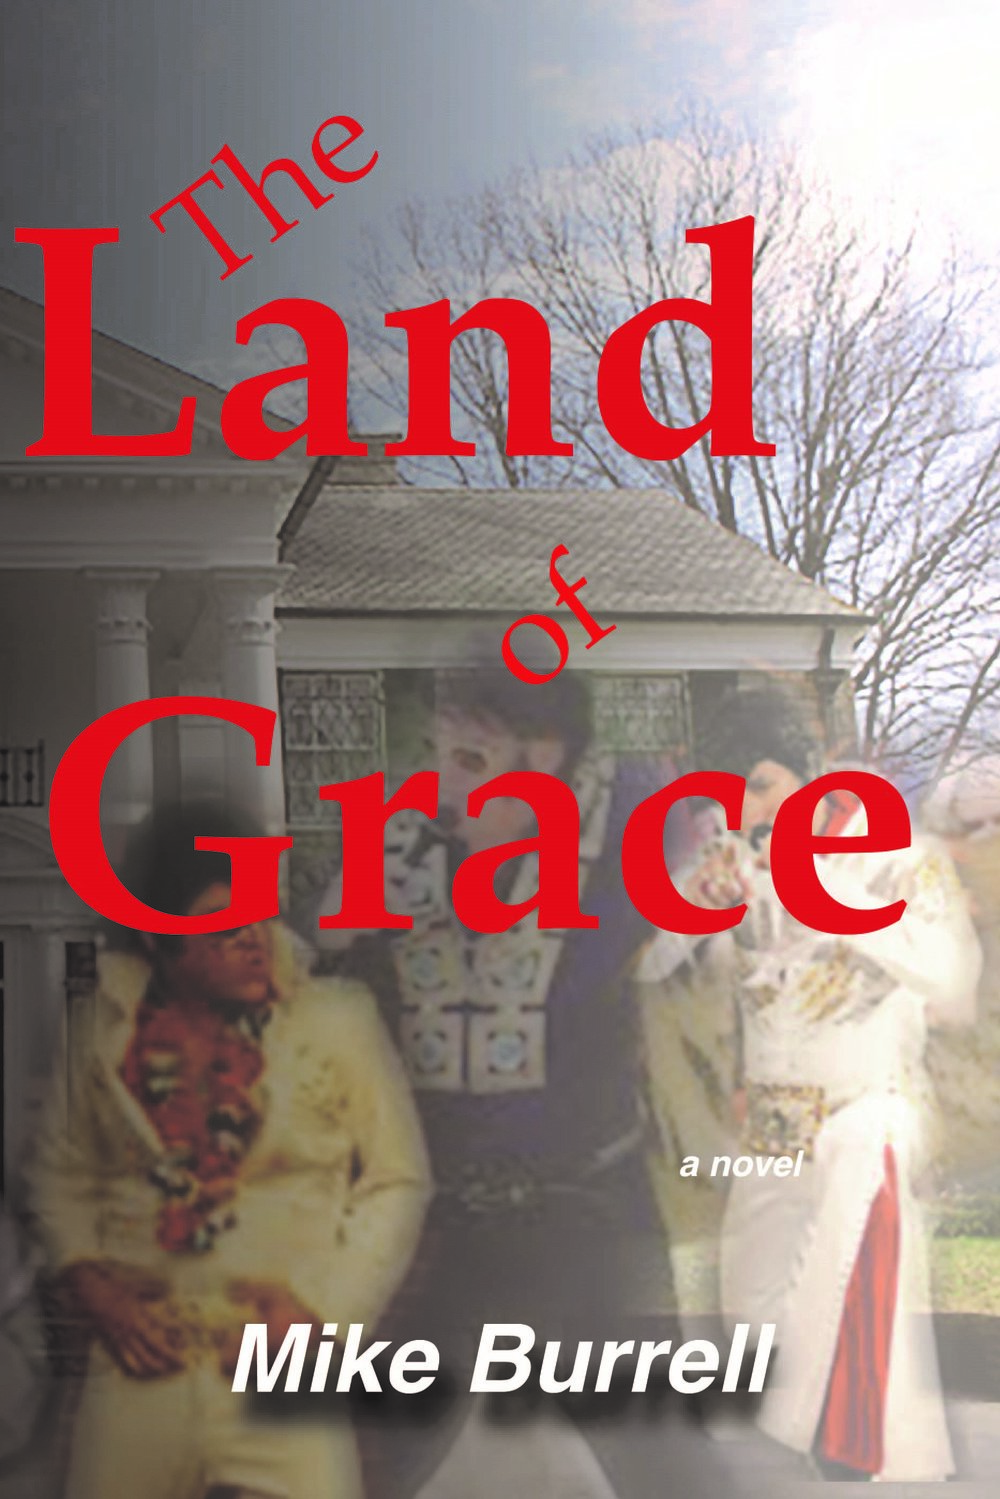 The-Land-of-Grace-book-cover.jpg